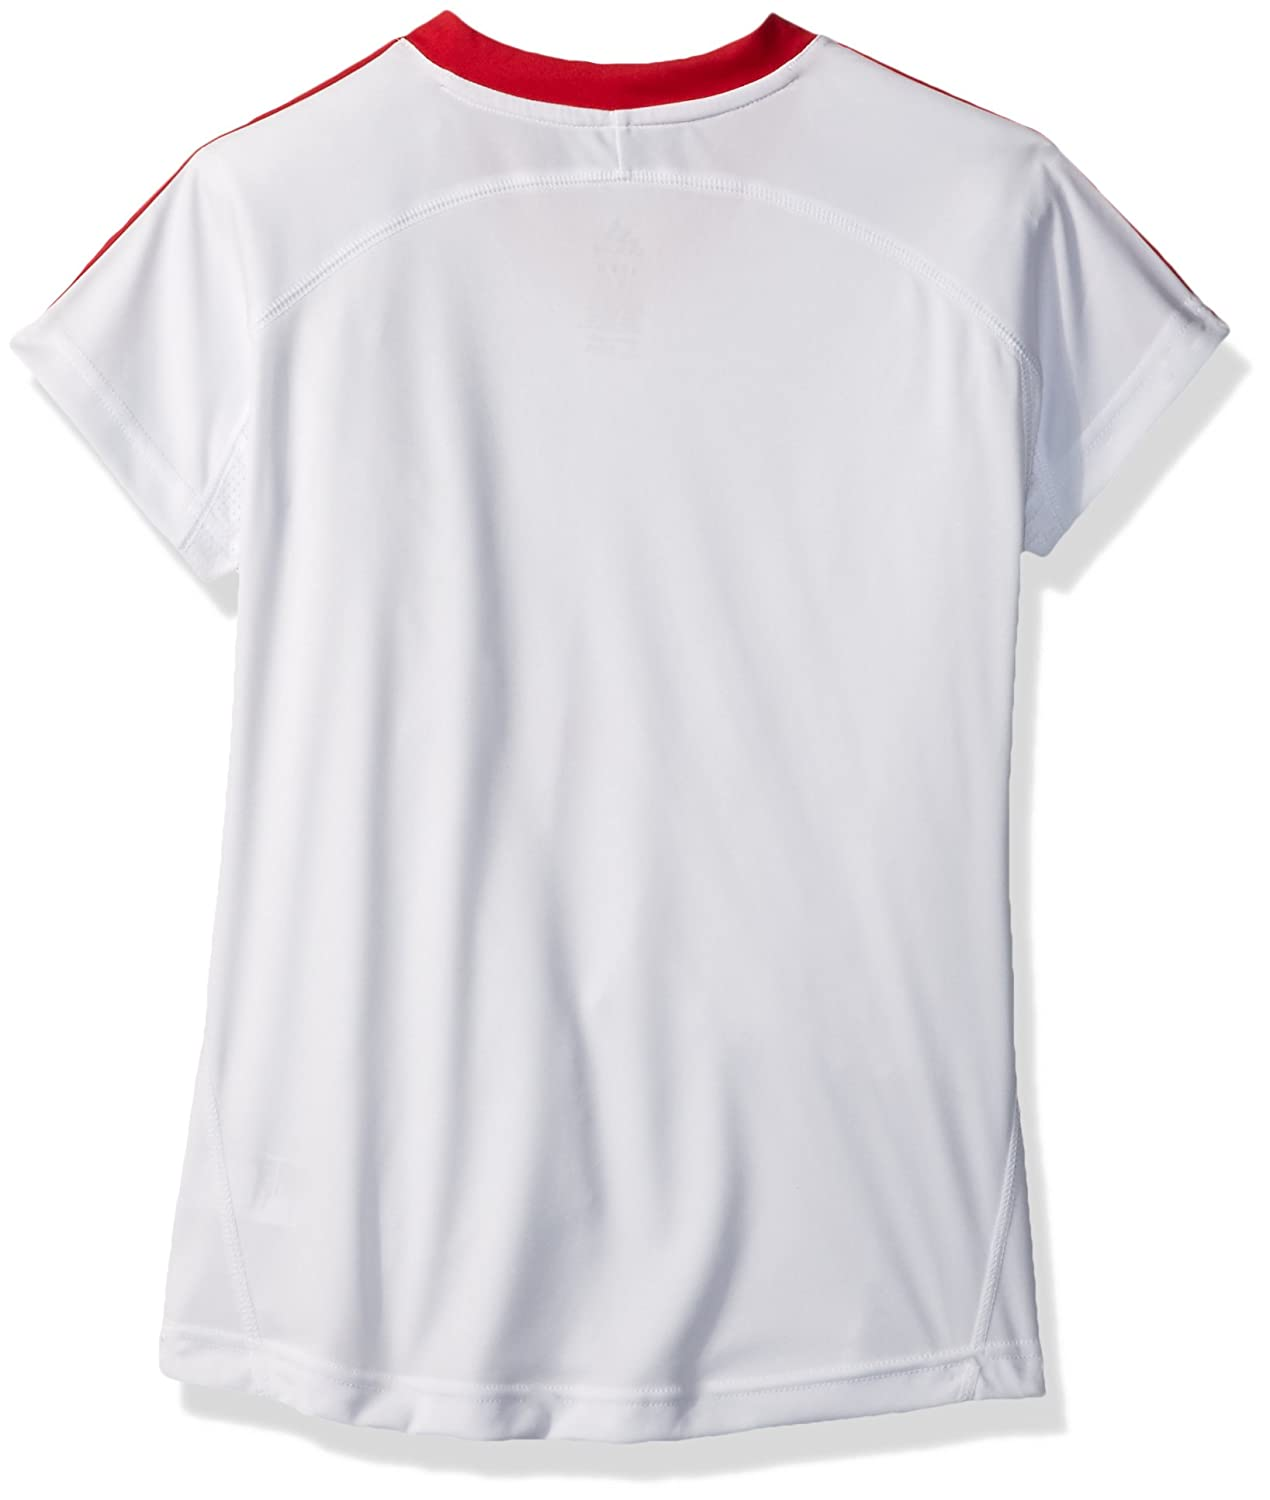 655a650509a13 Amazon.com : MLS Girls 7-16 Primary Call Up Jersey : Sports & Outdoors